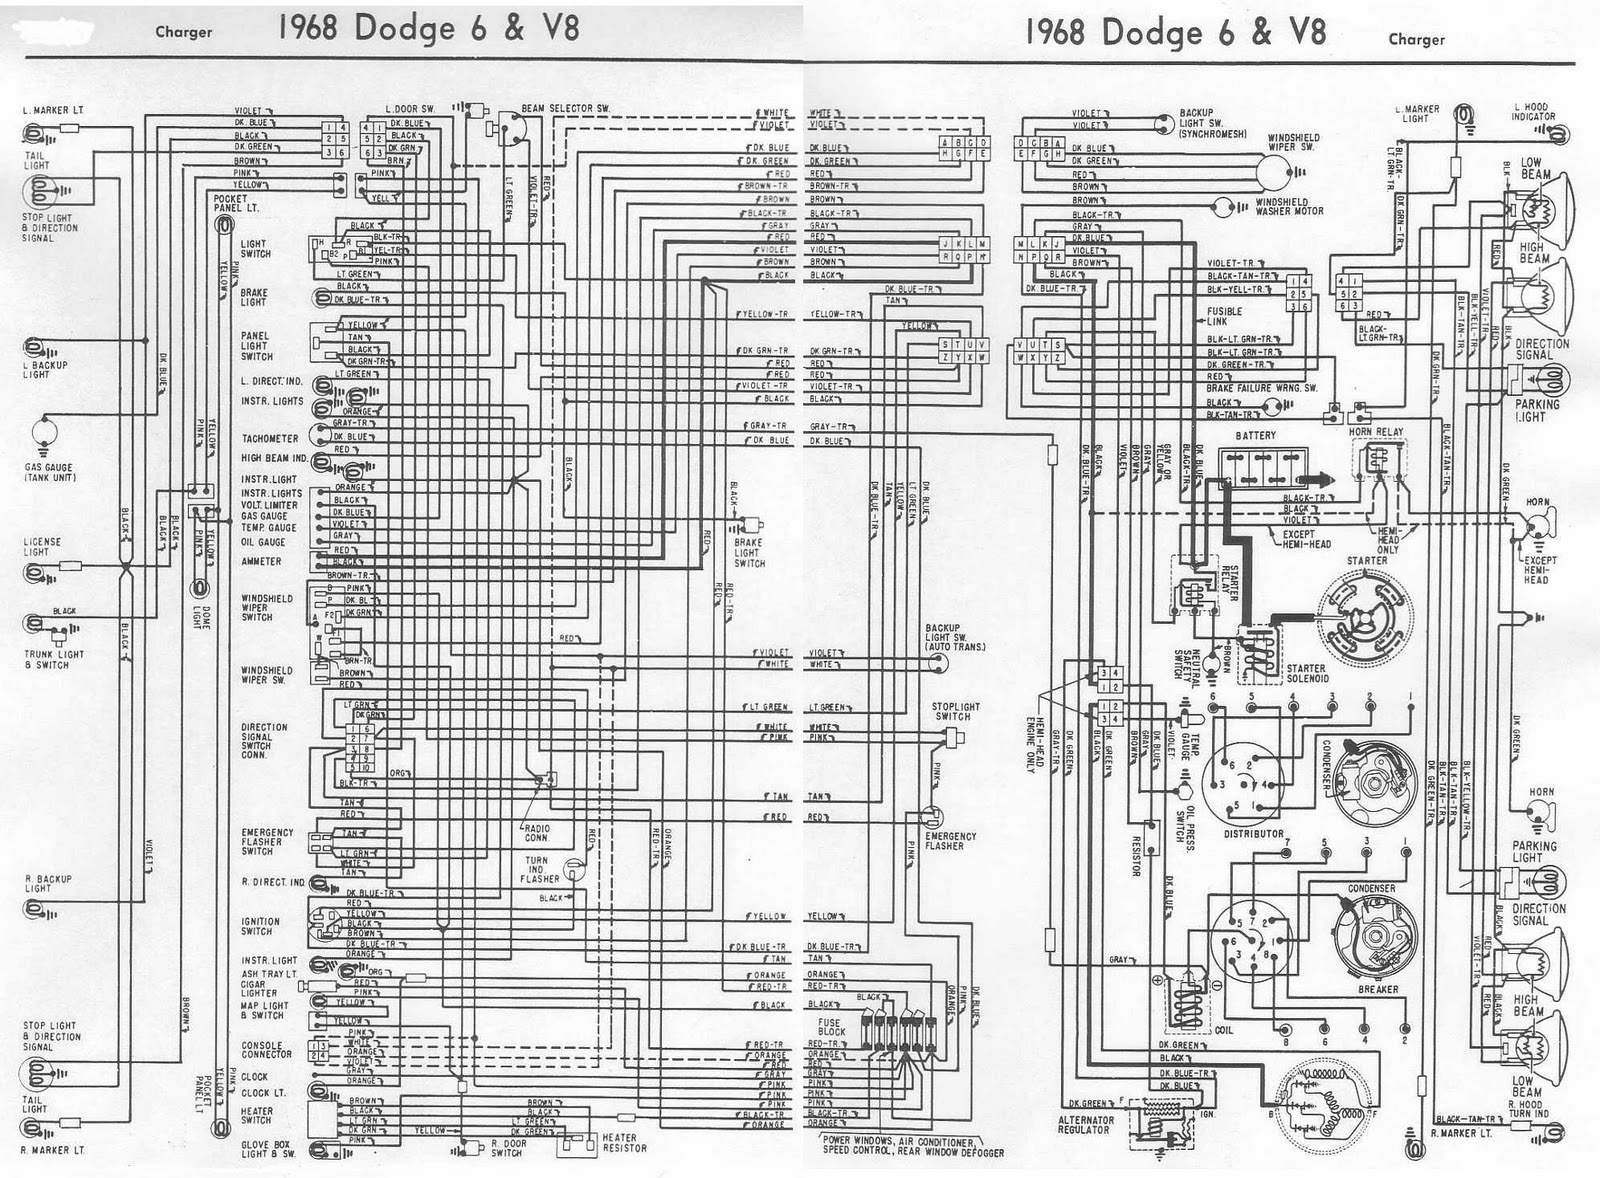 Dodge+Charger+1968+6+and+V8+Complete+Electrical+Wiring+Diagram dodge charger wiring diagram dodge wiring diagrams instruction 1970 dodge coronet wiring diagram at readyjetset.co